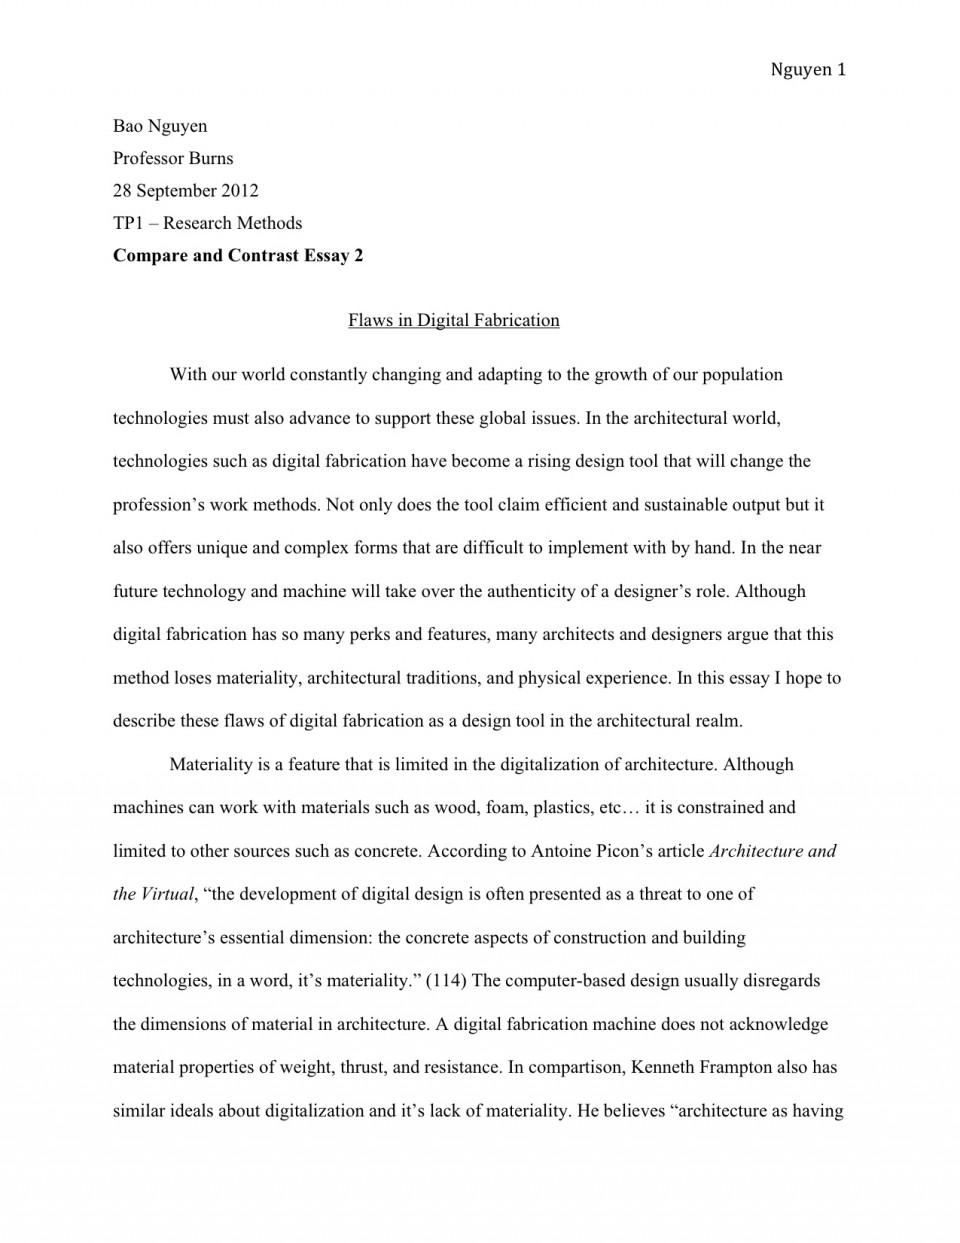 005 Essay Example With Thesis Tp1 3 Breathtaking Personal Narrative Statement And Topic Sentence Format 960